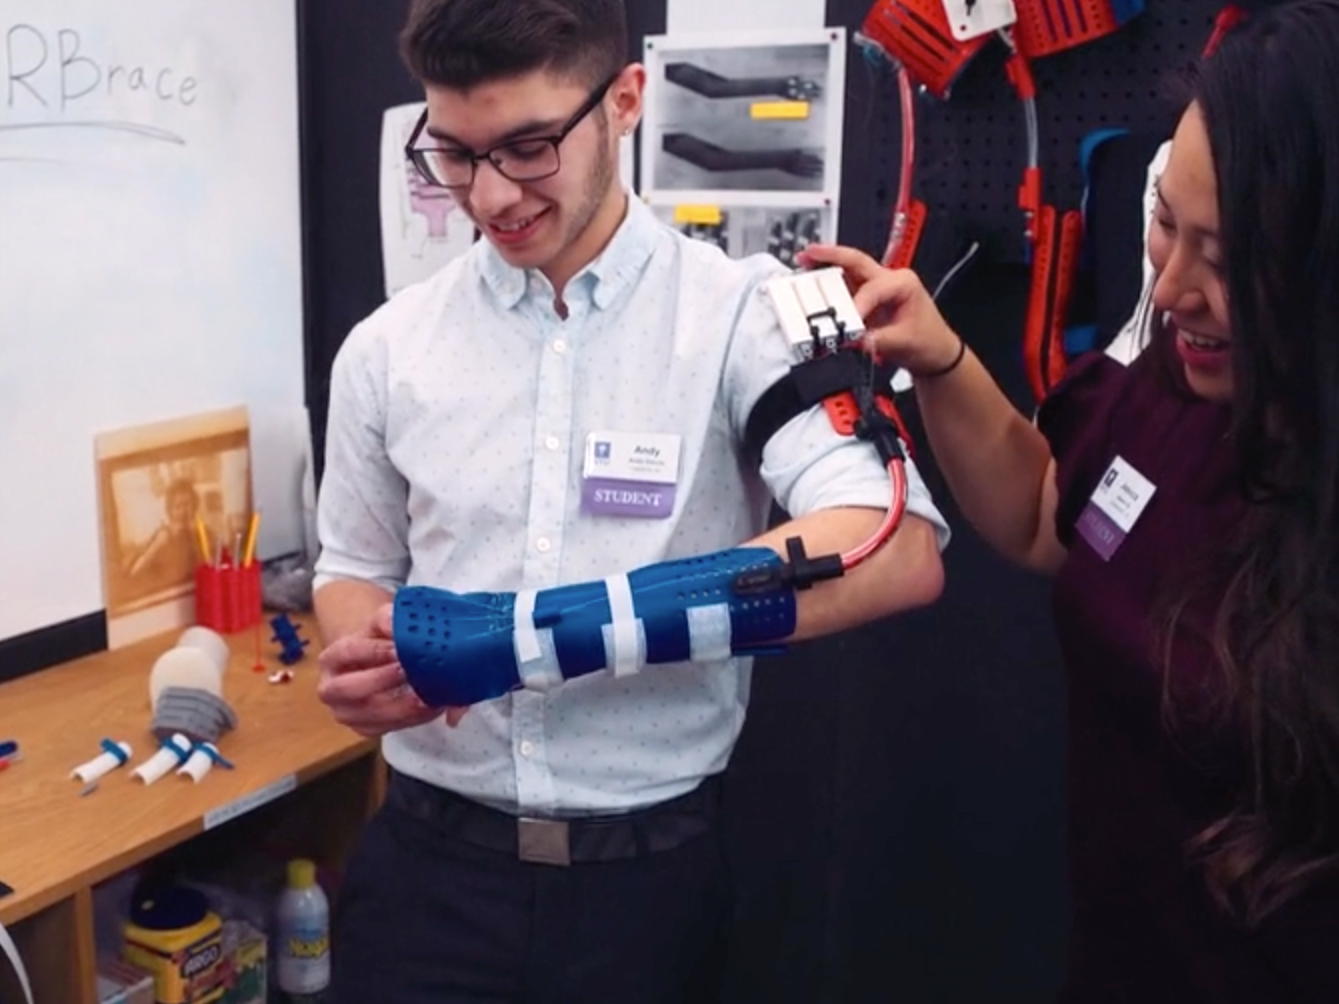 student at a showcase trying on the prototype brace